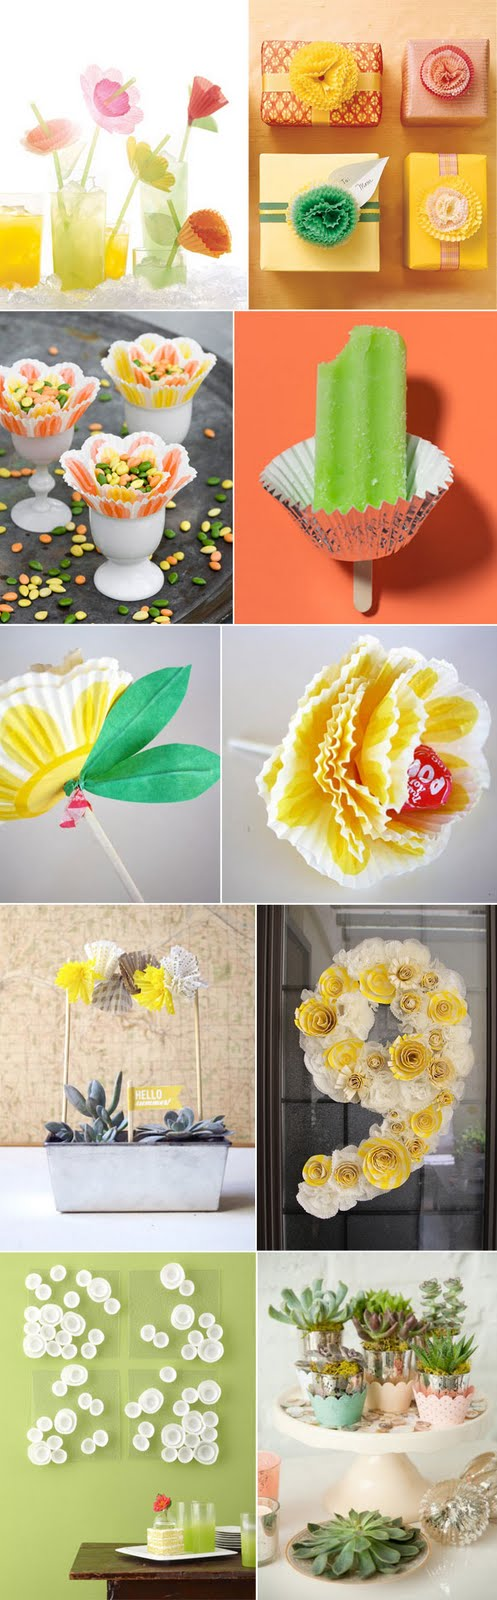 Image detail for -bonafidebride: Cupcake Liner DIY Crafts {they're a piece of cake!}